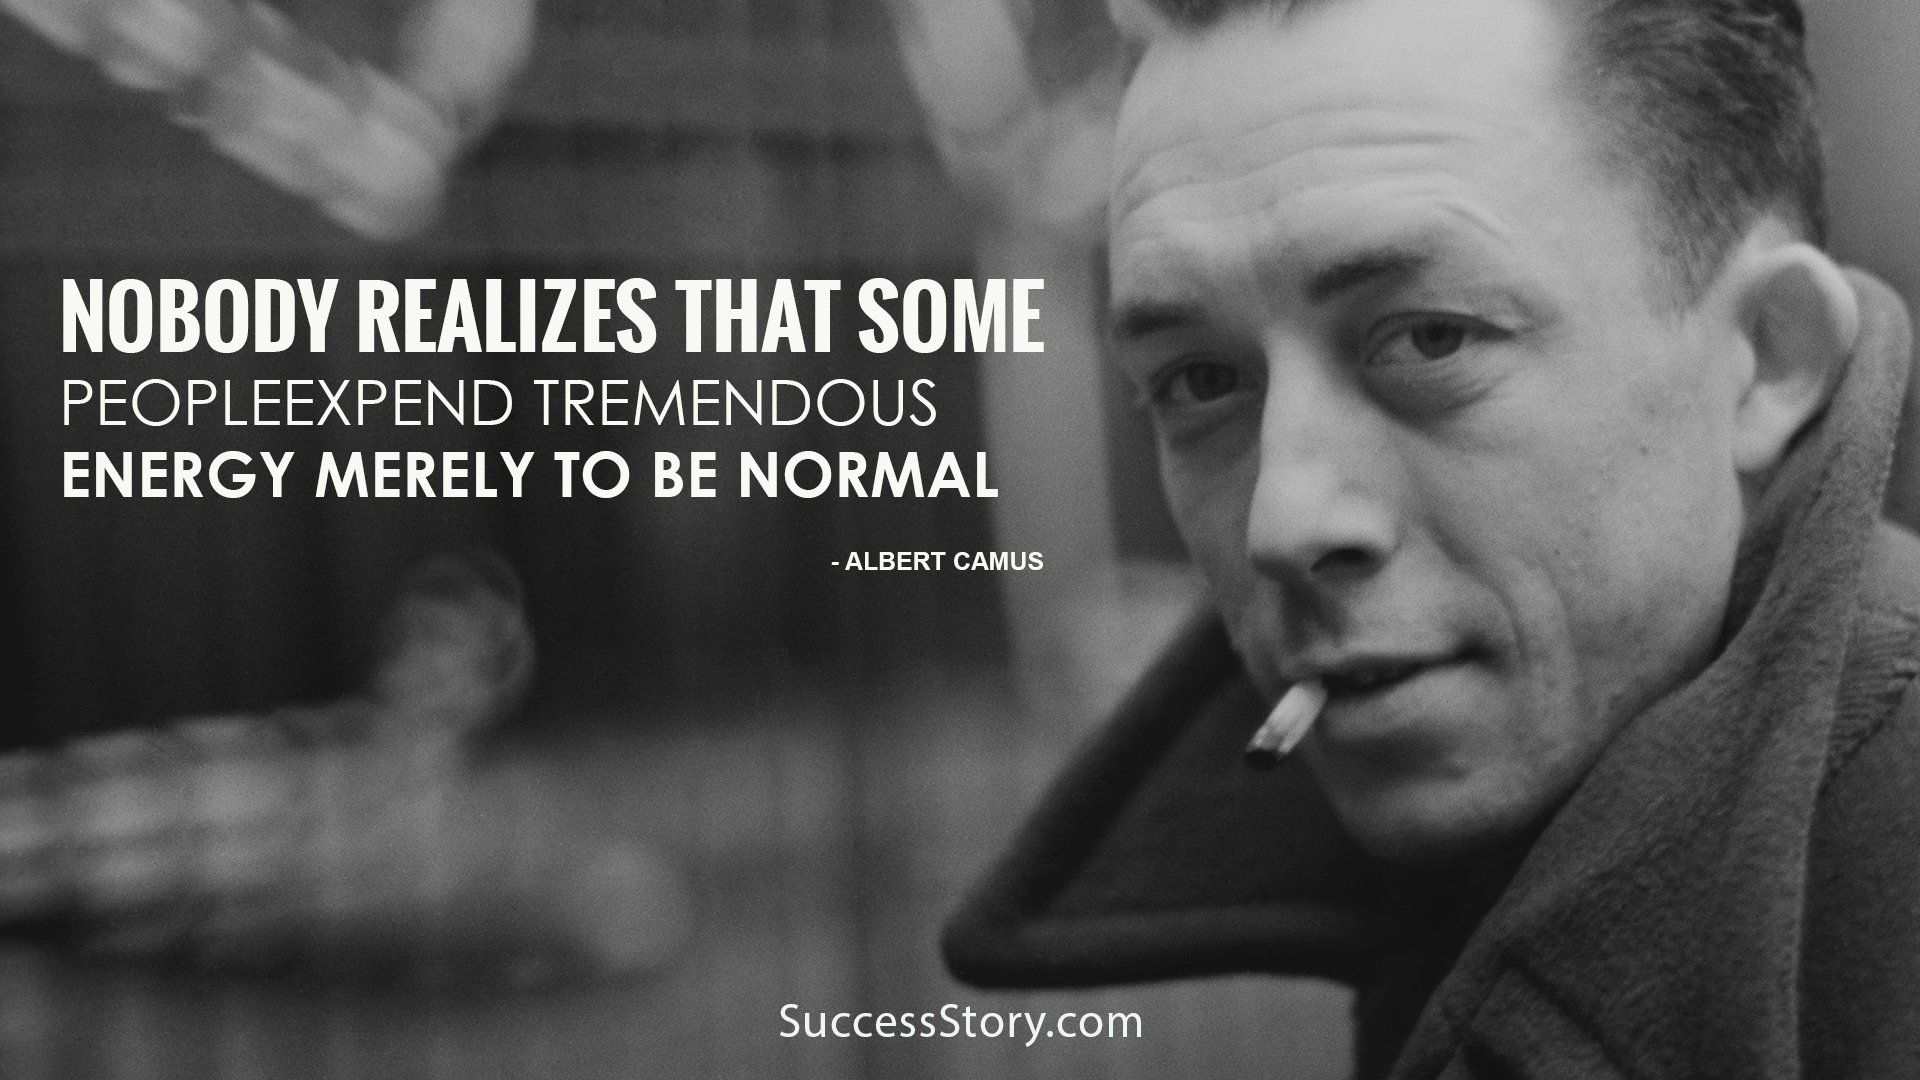 Albert Camus Quotes Cool Αποτέλεσμα Εικόνας Για Albert Camus Quotes Nobody Realizes  Quotes